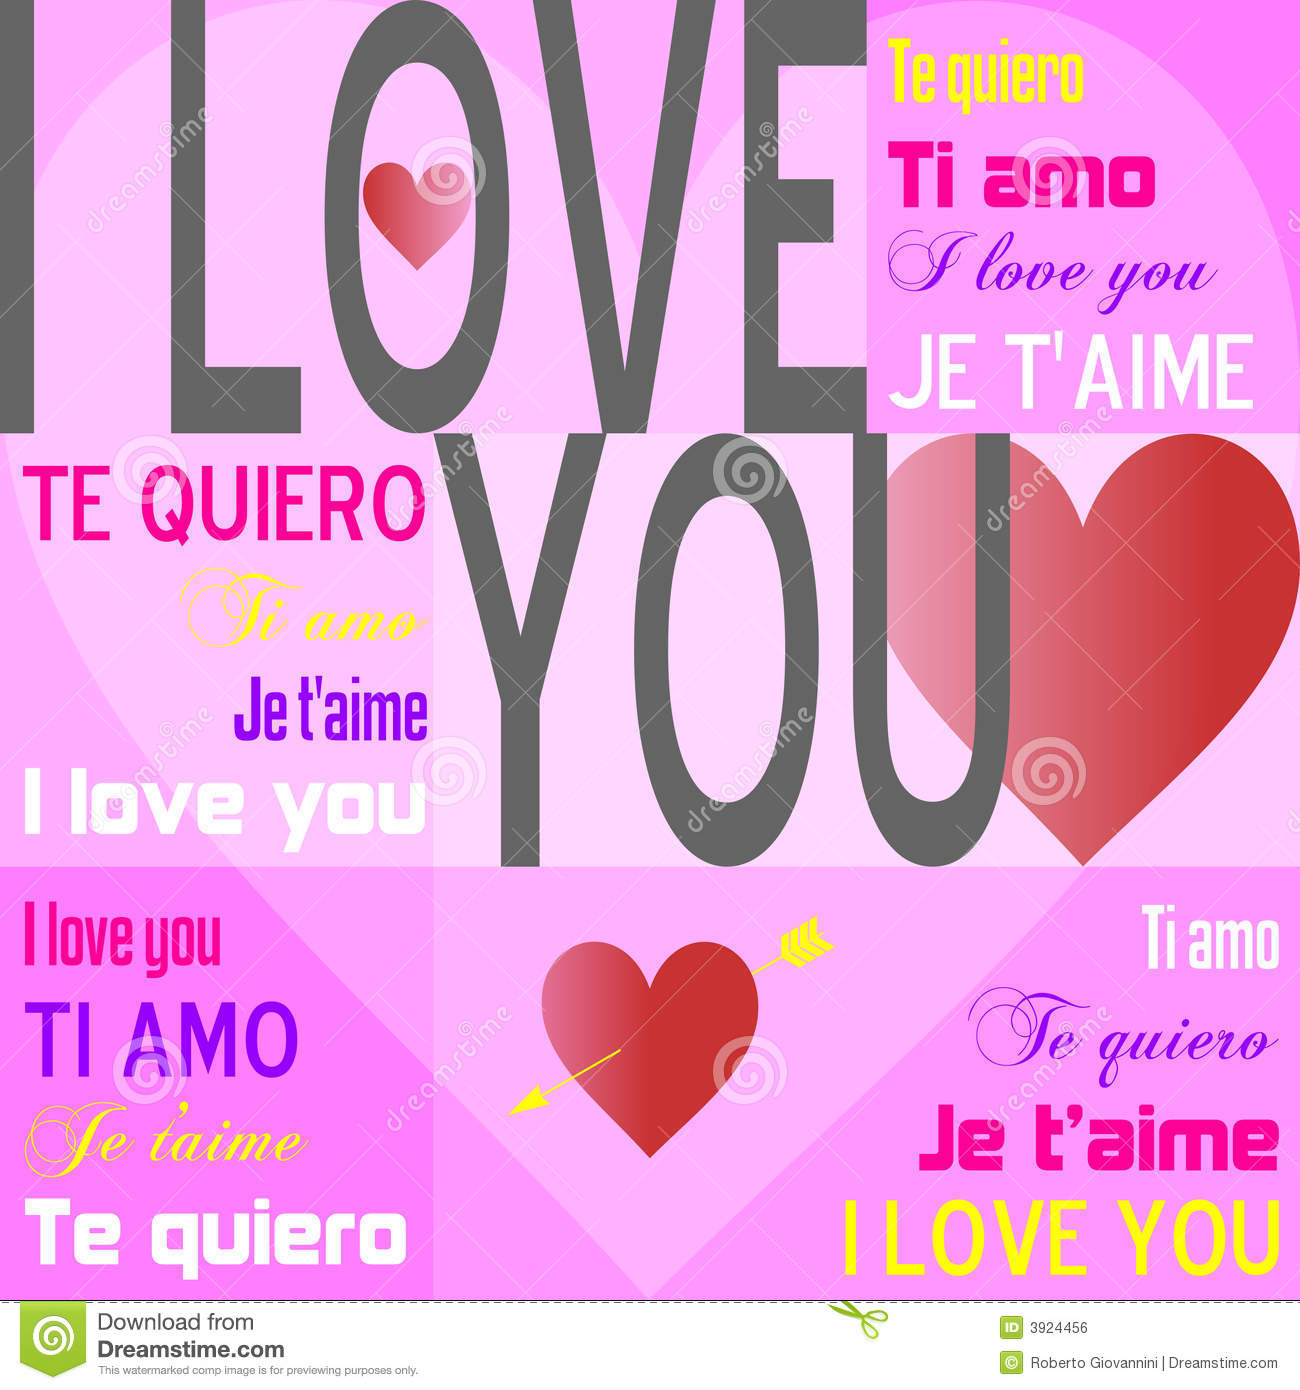 flirting poems in spanish Spanish version: words of love in russian compliments in russian - romantic phrases in russian - tender nicknames thanks for sharing us we love you.